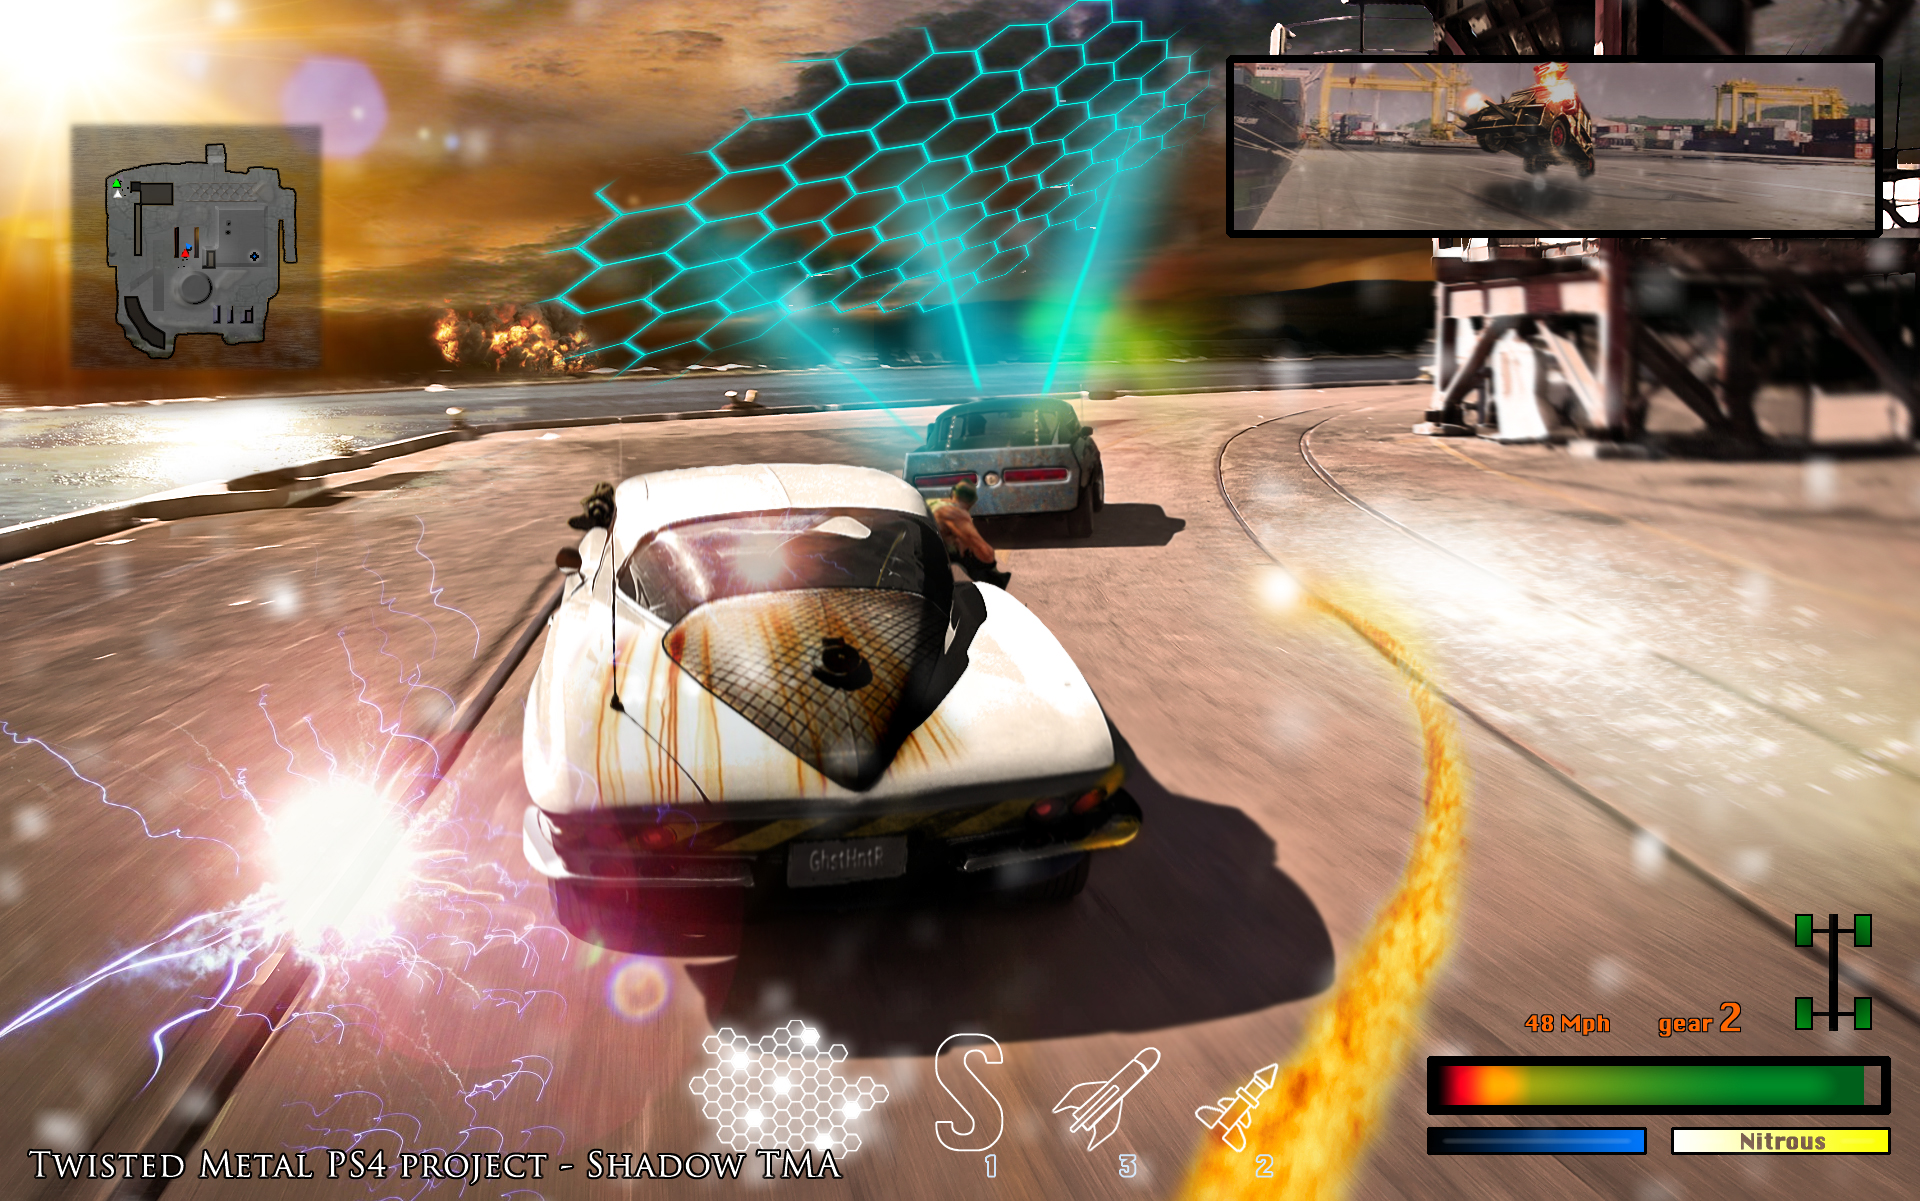 Next Generation Twisted Metal (PS4 ?)